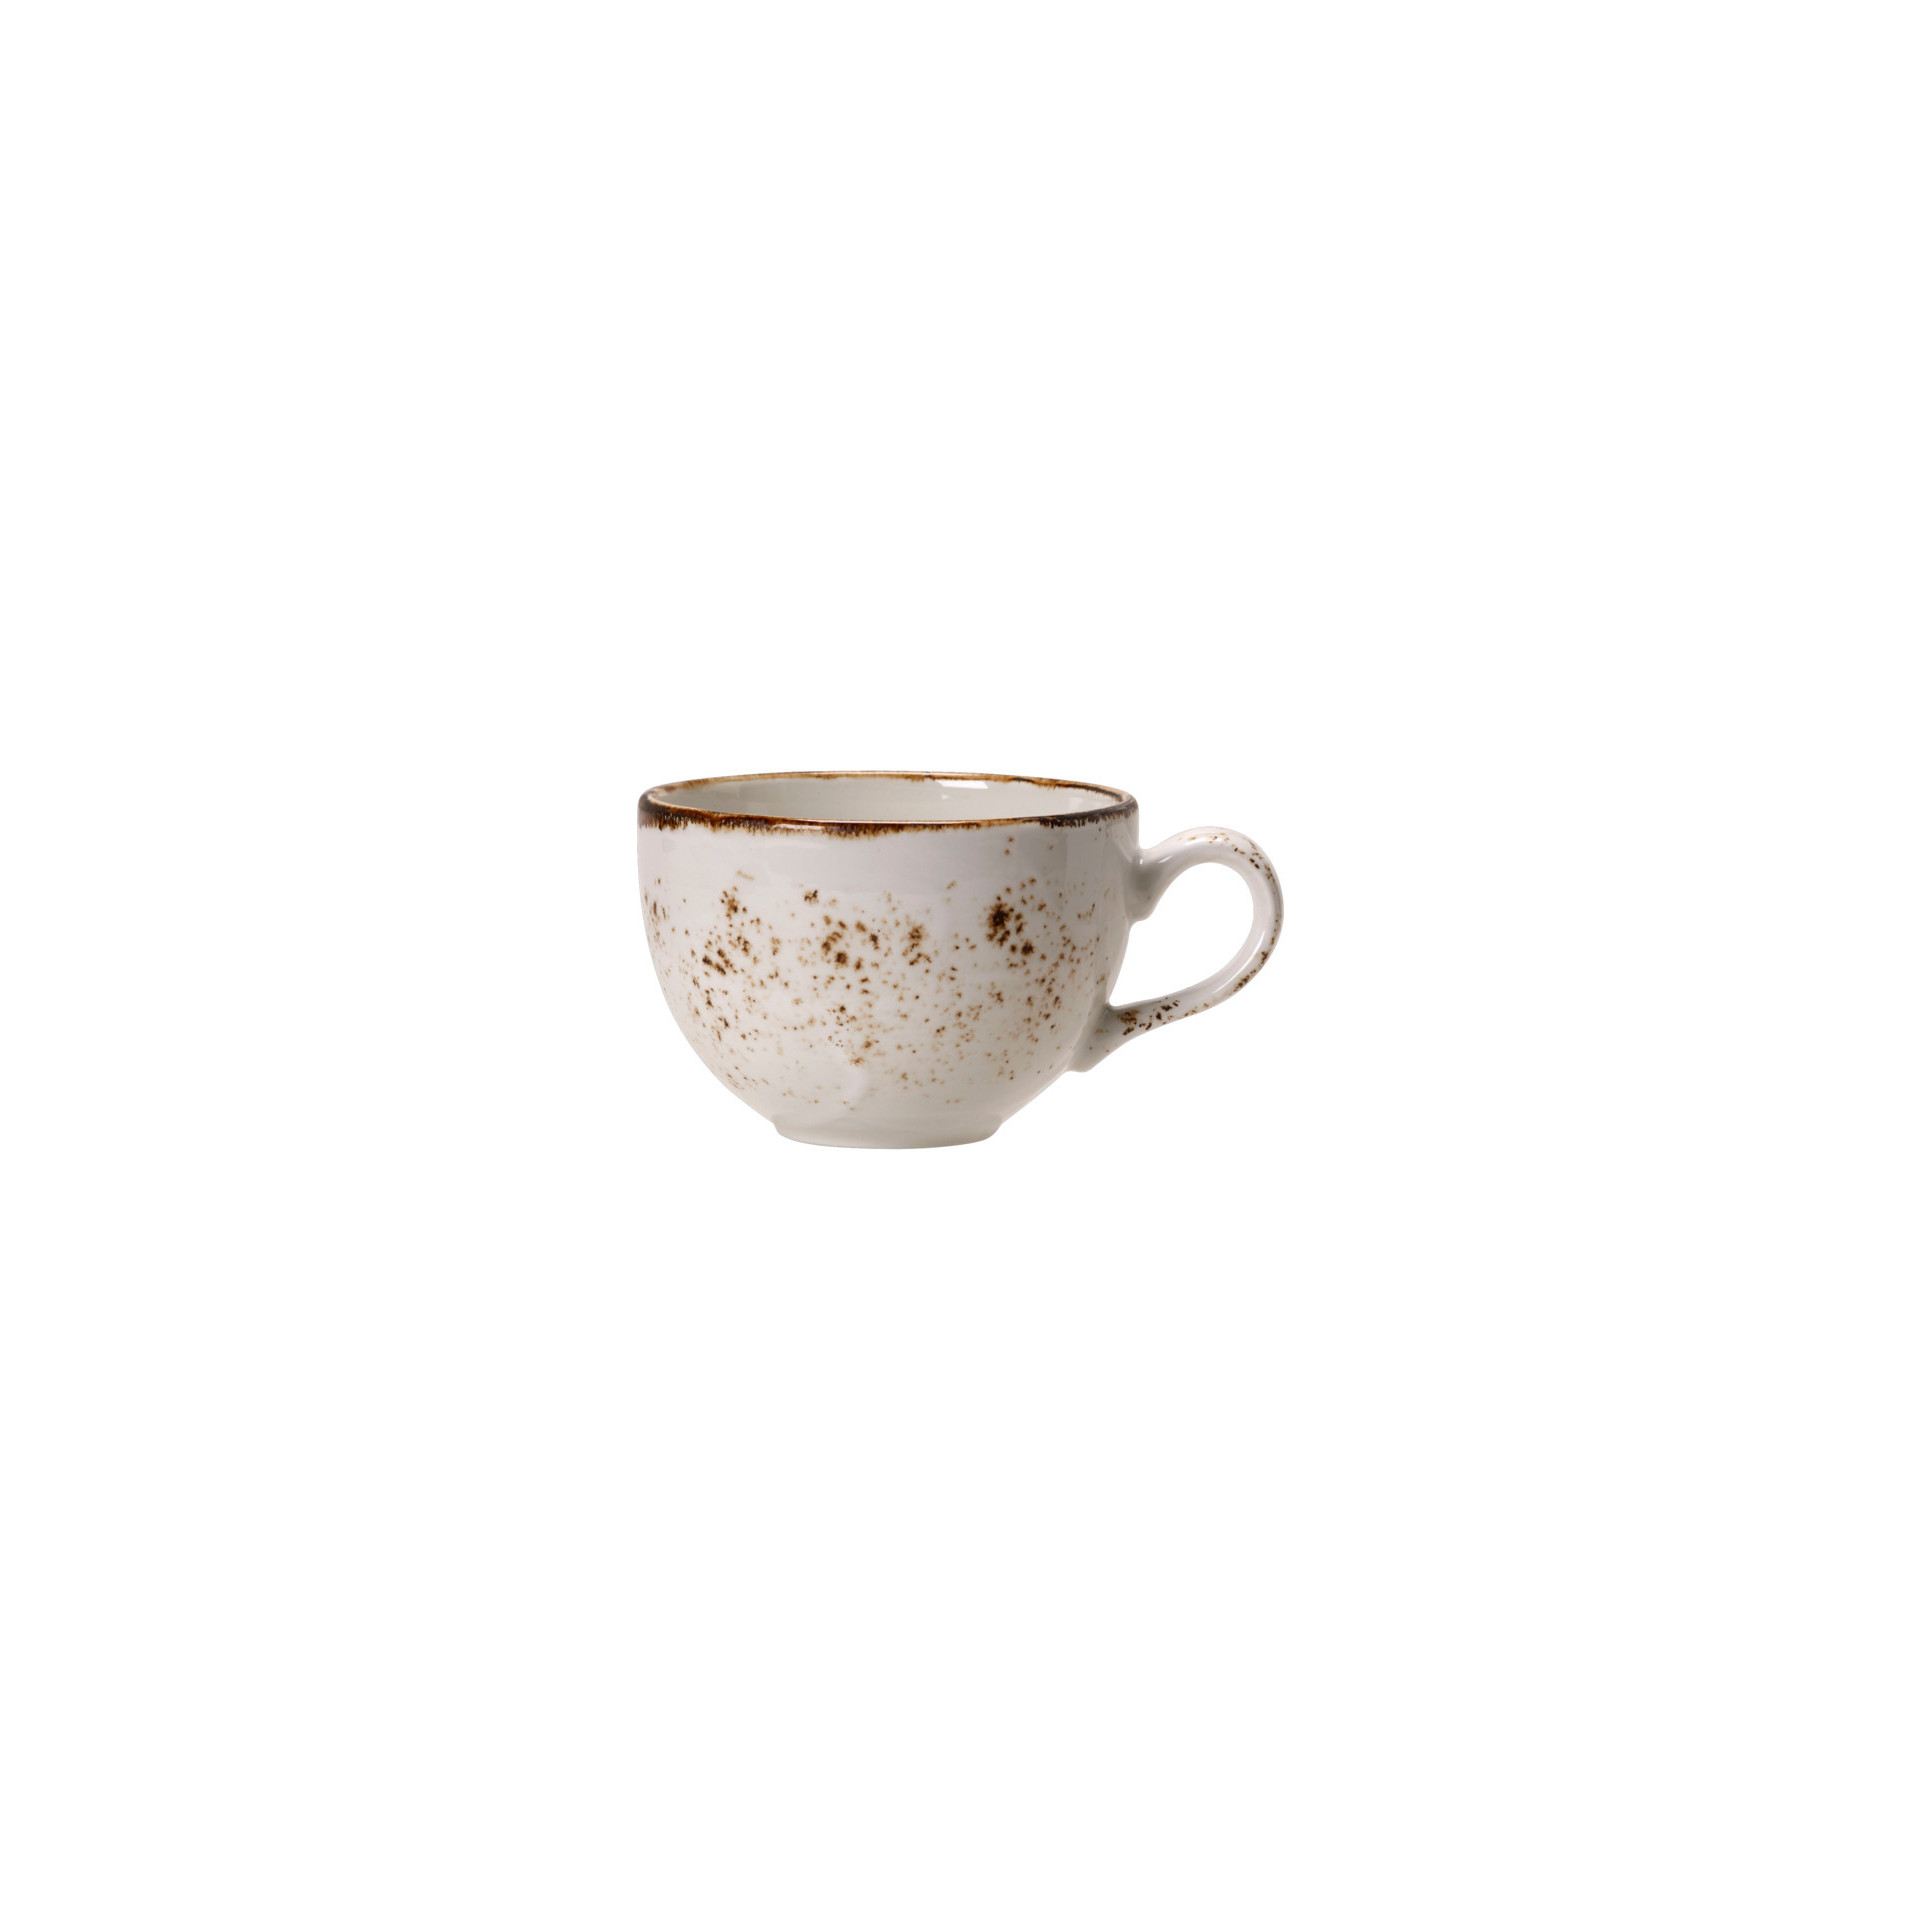 Craft White, Tasse nicht stapelbar 0,46 l